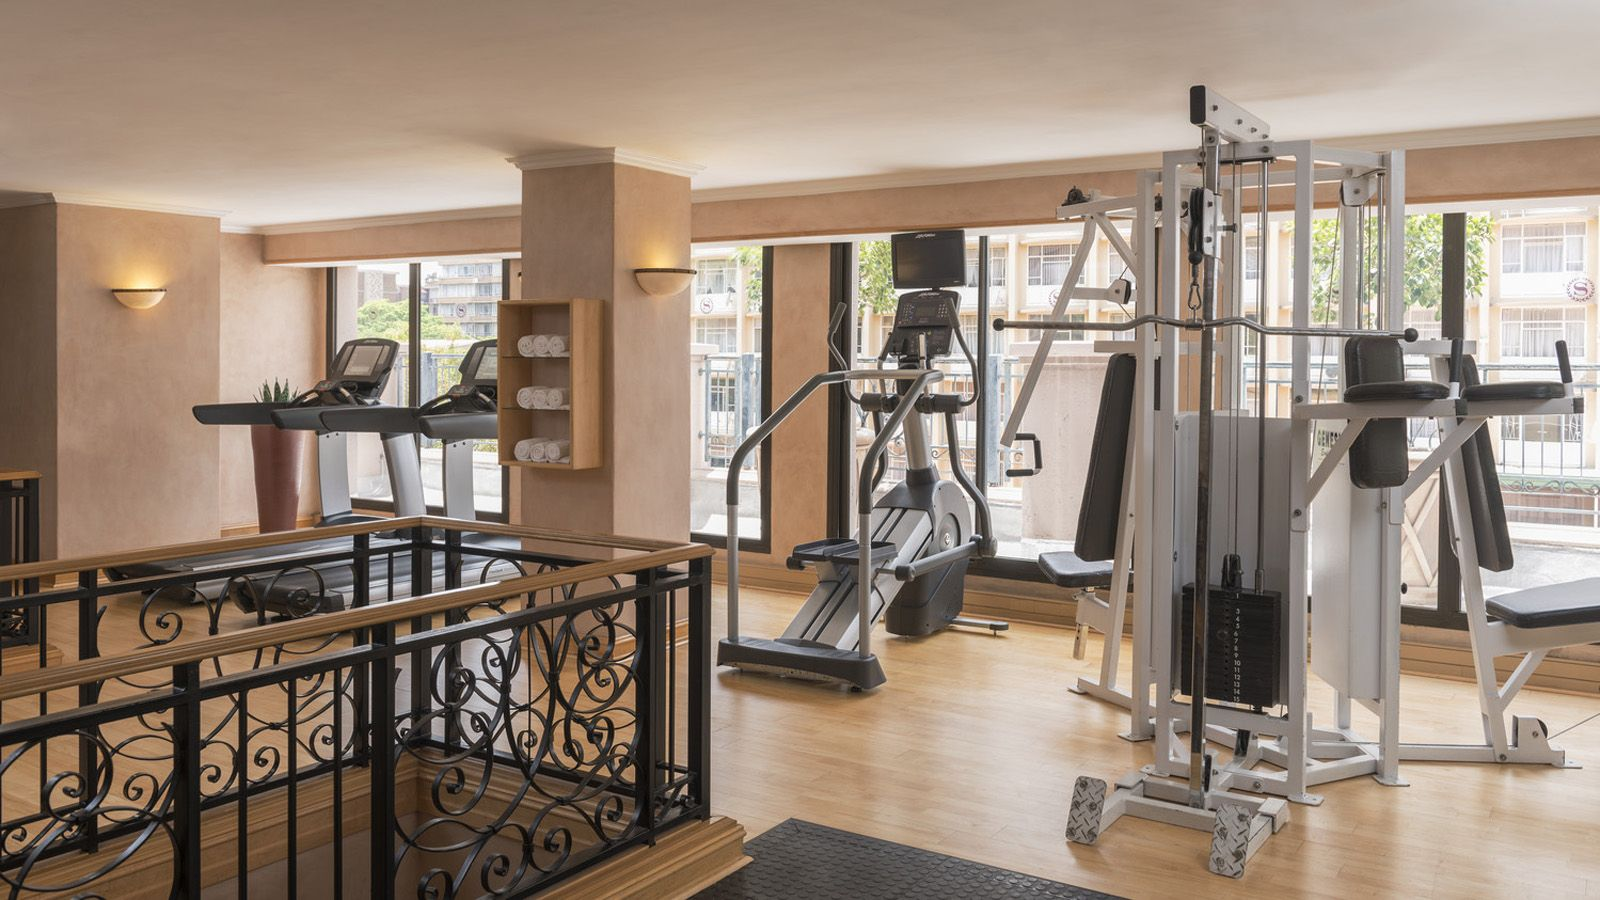 Sheraton Pretoria Fitness Center Interior View